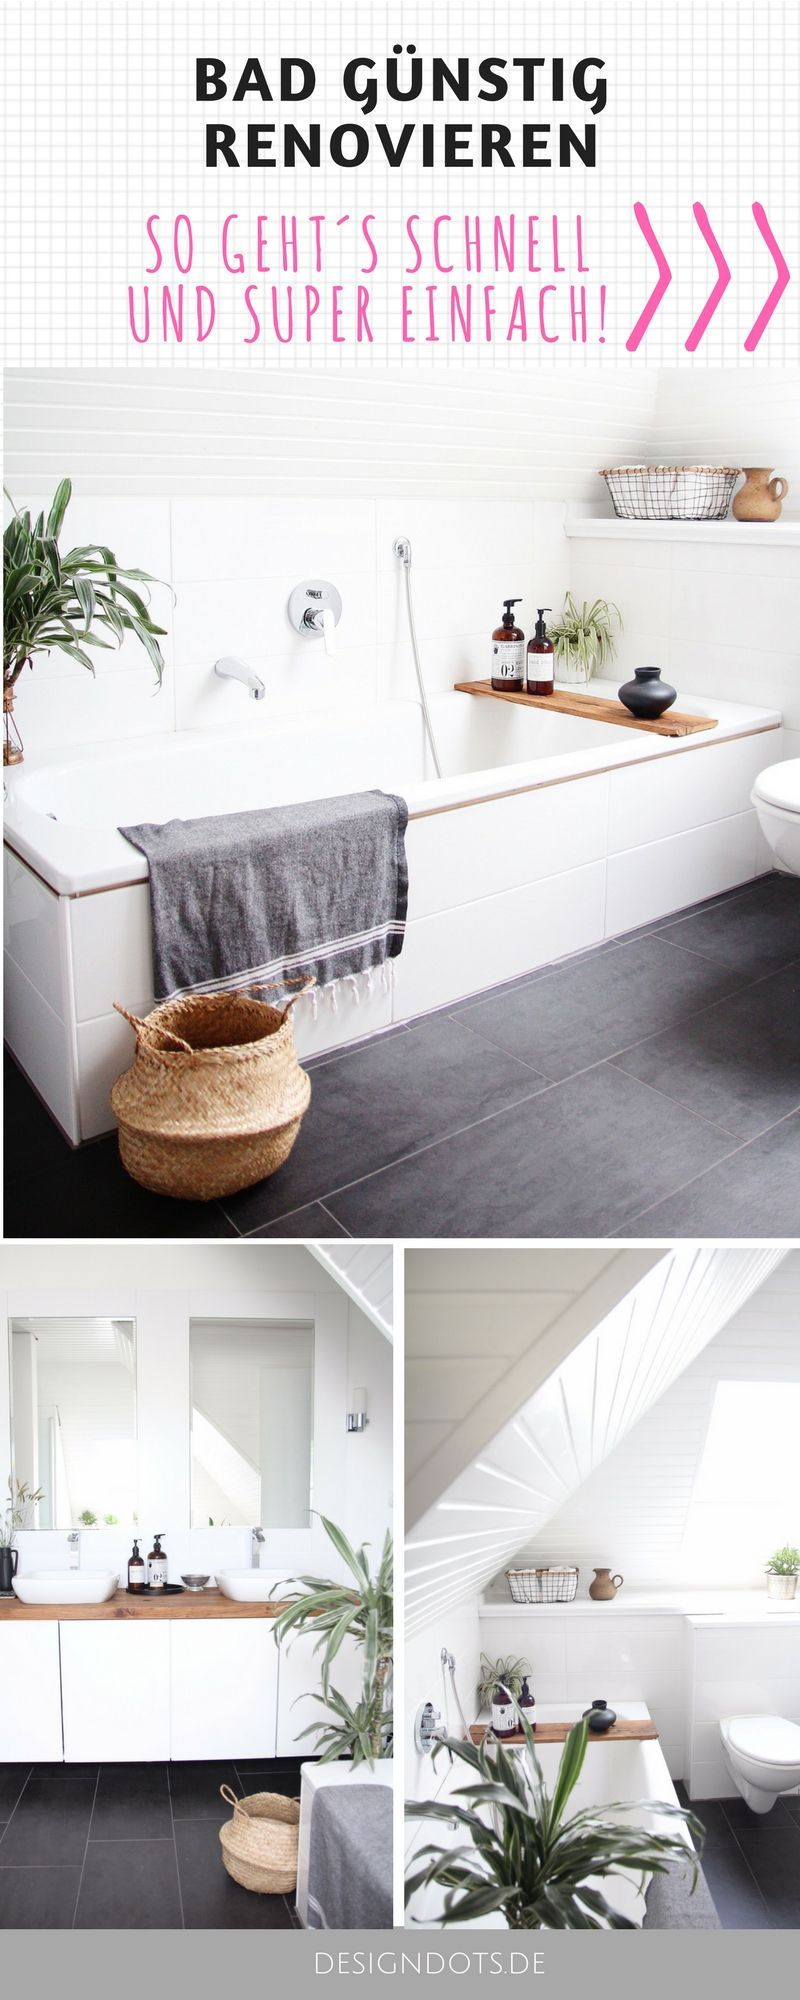 Mein Blog The Bathroom Even To Renovate Aufbewahrung Aufbewahrung Bad Ideen Bathroom Blog Mein Renov In 2020 Badezimmer Renovieren Bad Renovieren Bad Renovieren Kosten